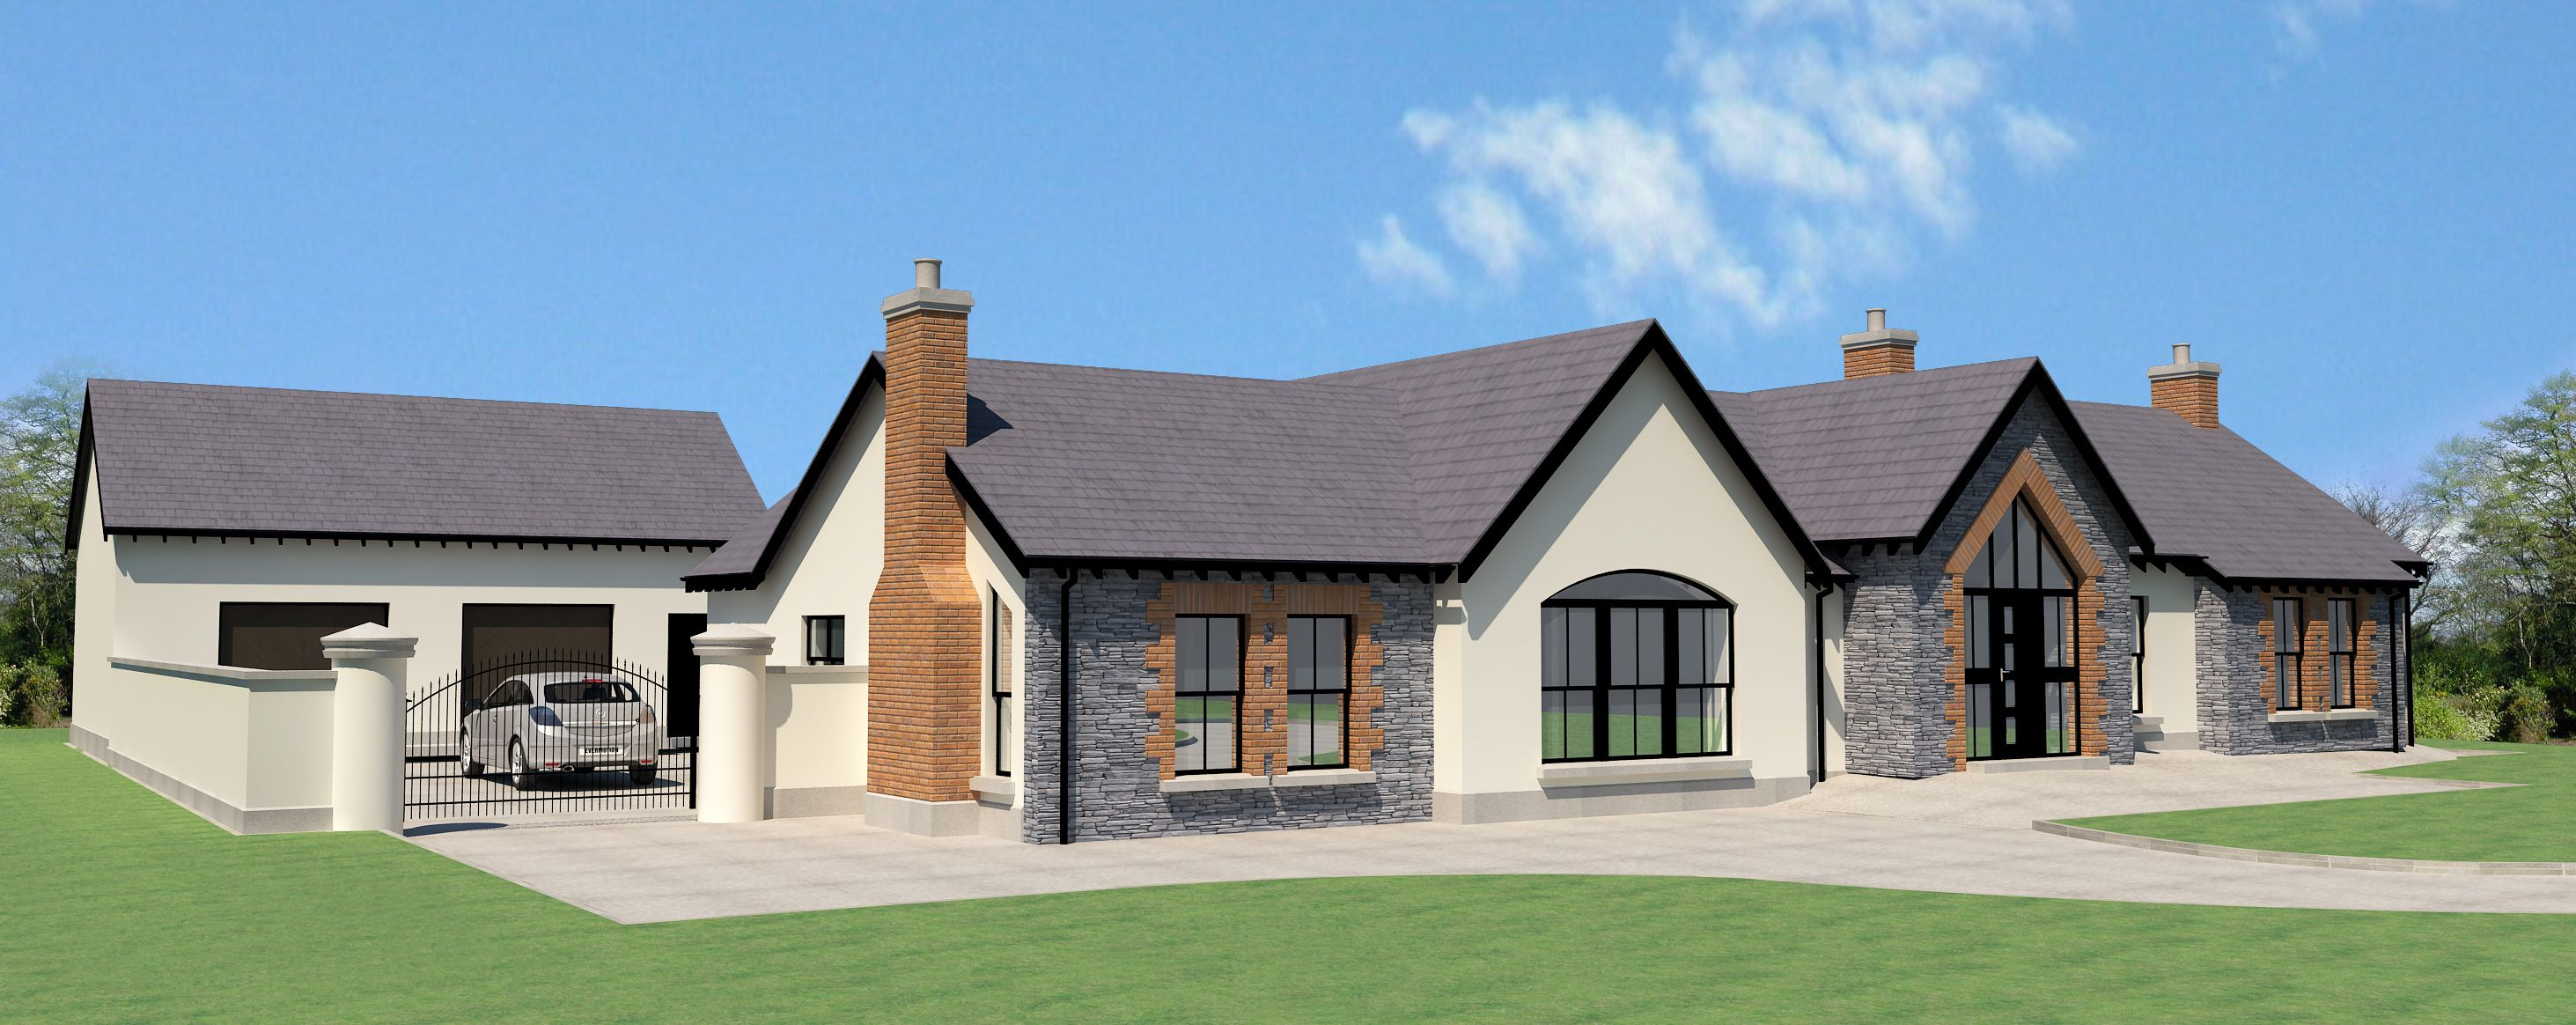 Unique House Designs Ireland Modern Bungalow House House Designs Ireland Irish House Plans